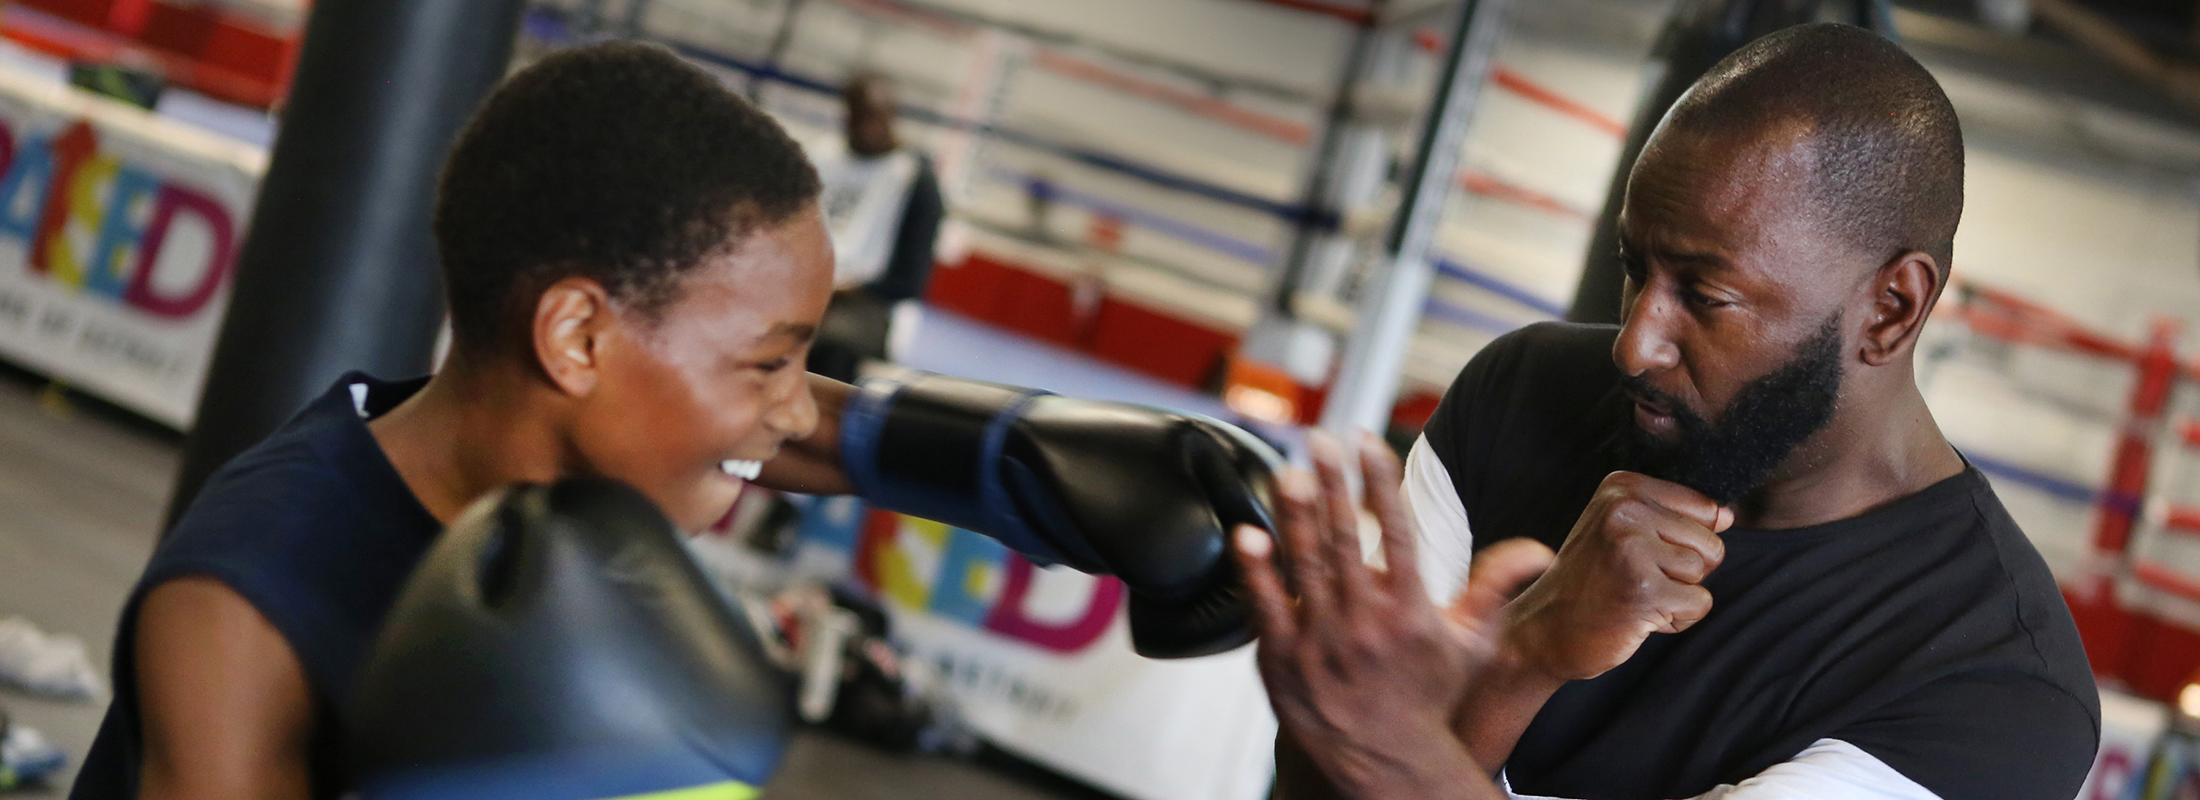 Detroit's Downtown Boxing Gym founder Khali Sweeney, right, coaches a young boxer at the after school program that the Ralph C. Wilson, Jr. Foundation helps support with grant money.  (Photo by J. Kyle Keener)